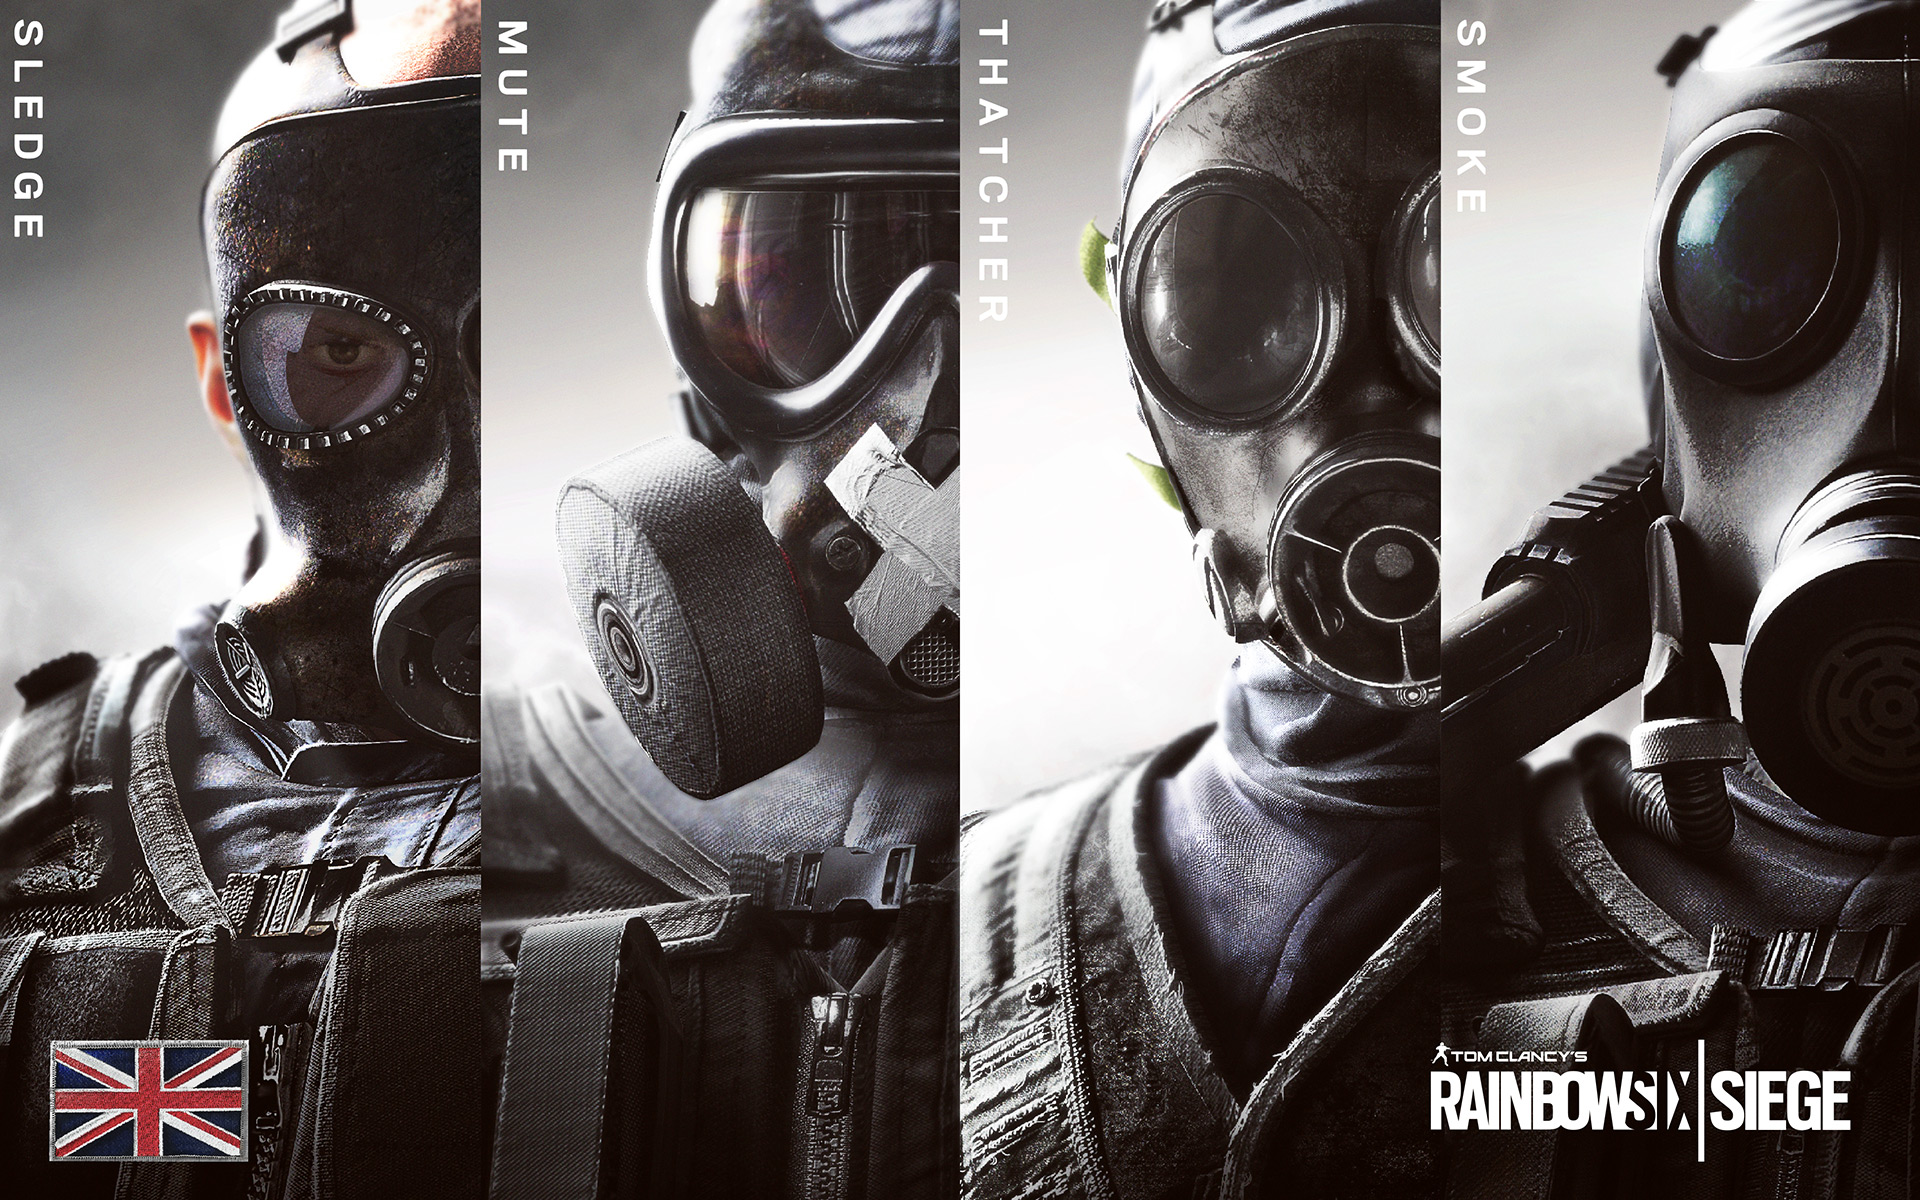 Steam Community :: Guide :: Starter's Guide to Siege